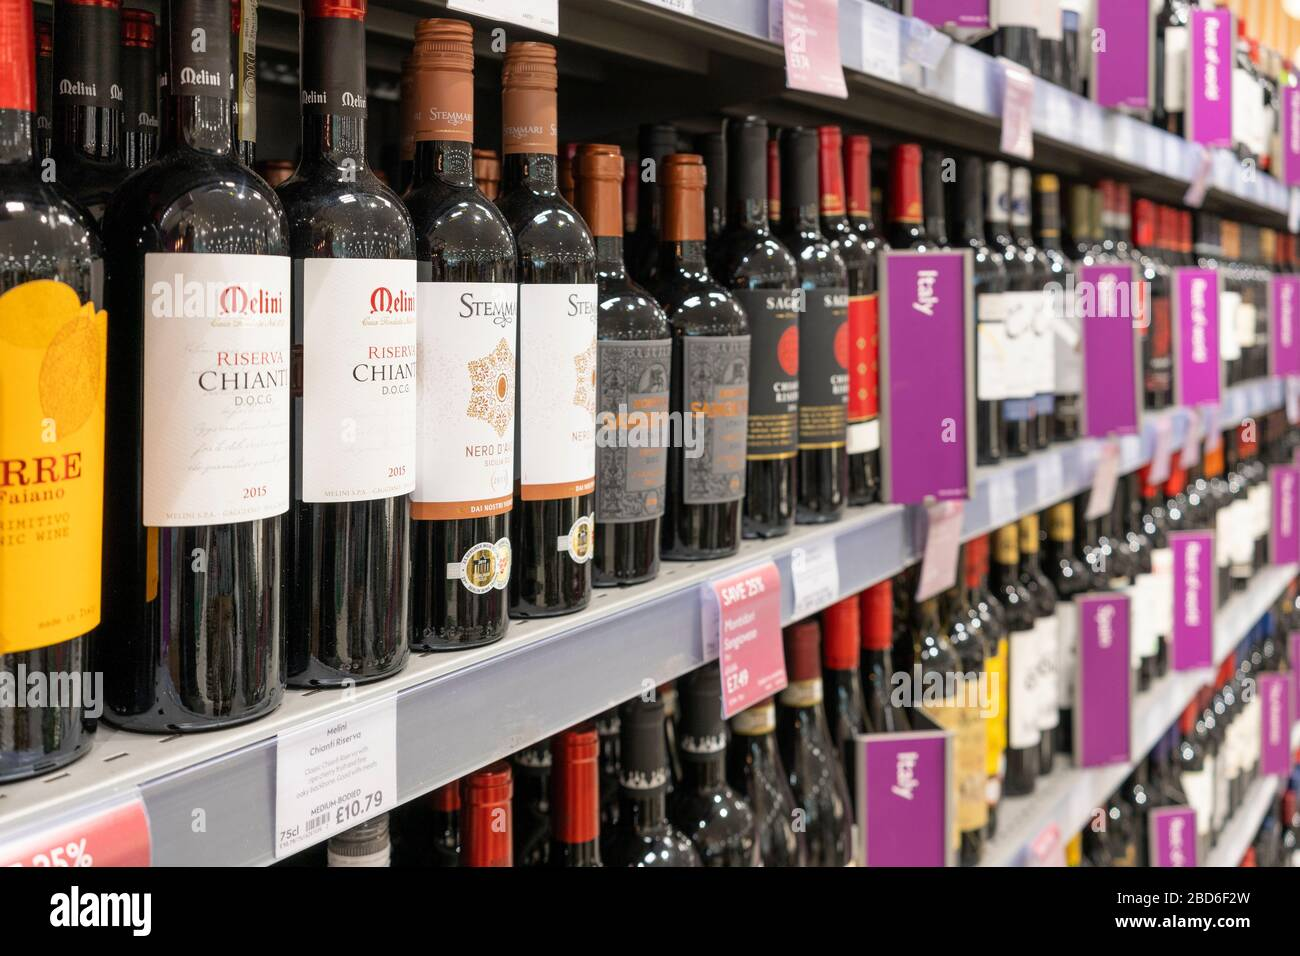 red-wine-bottles-on-display-on-shelves-f